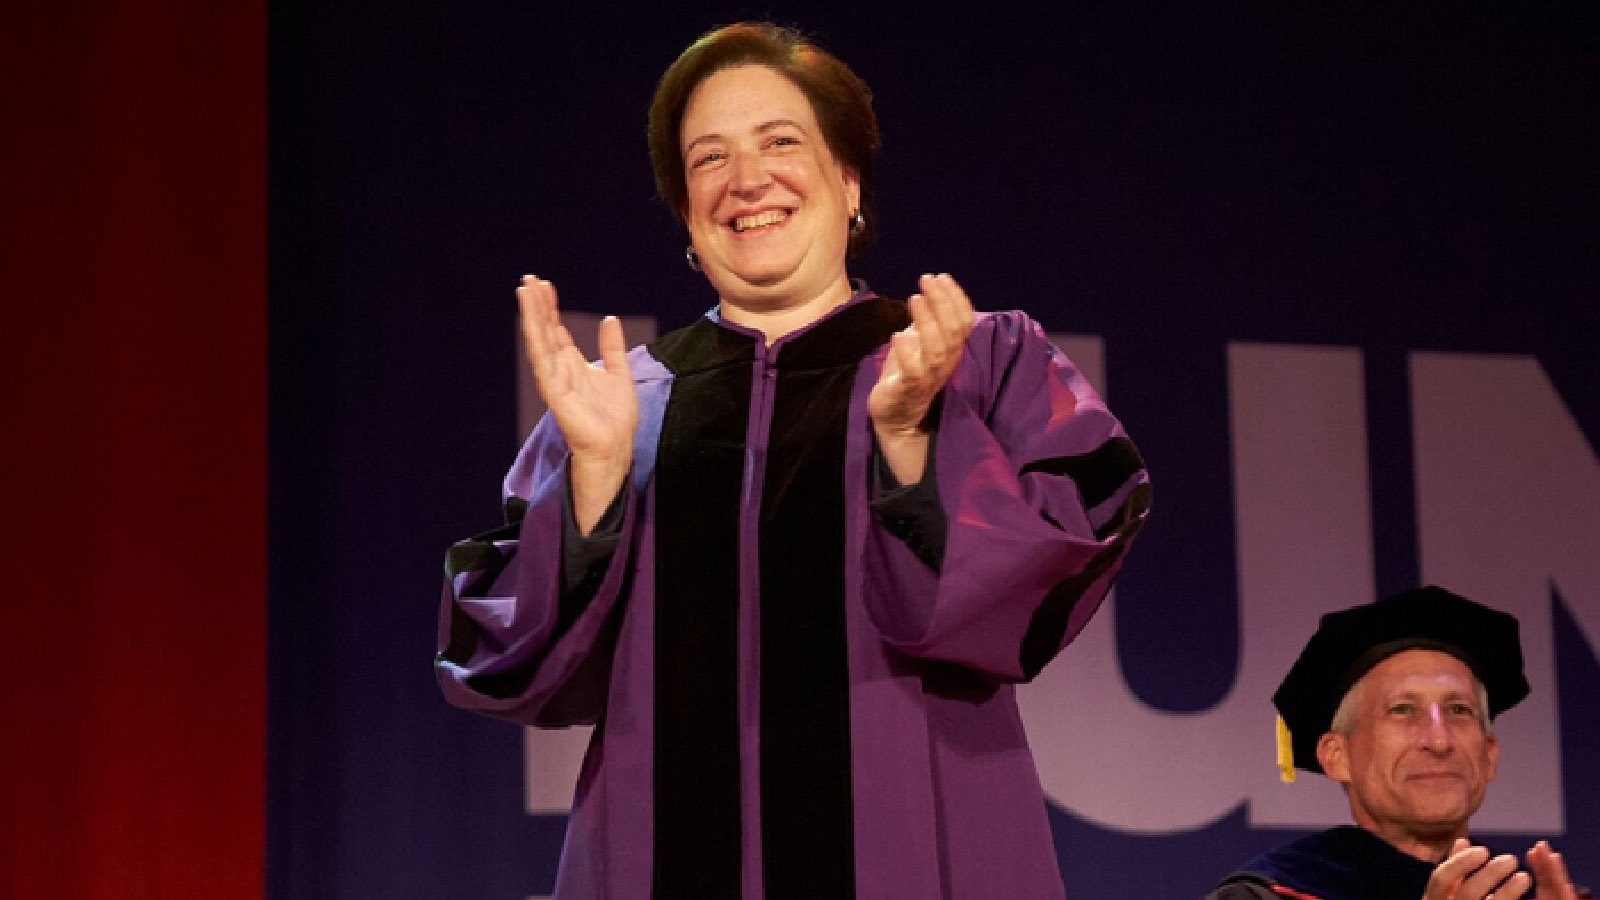 Supreme Court Justice Elena Kagan receives Honorary Doctorate of Humane Letters